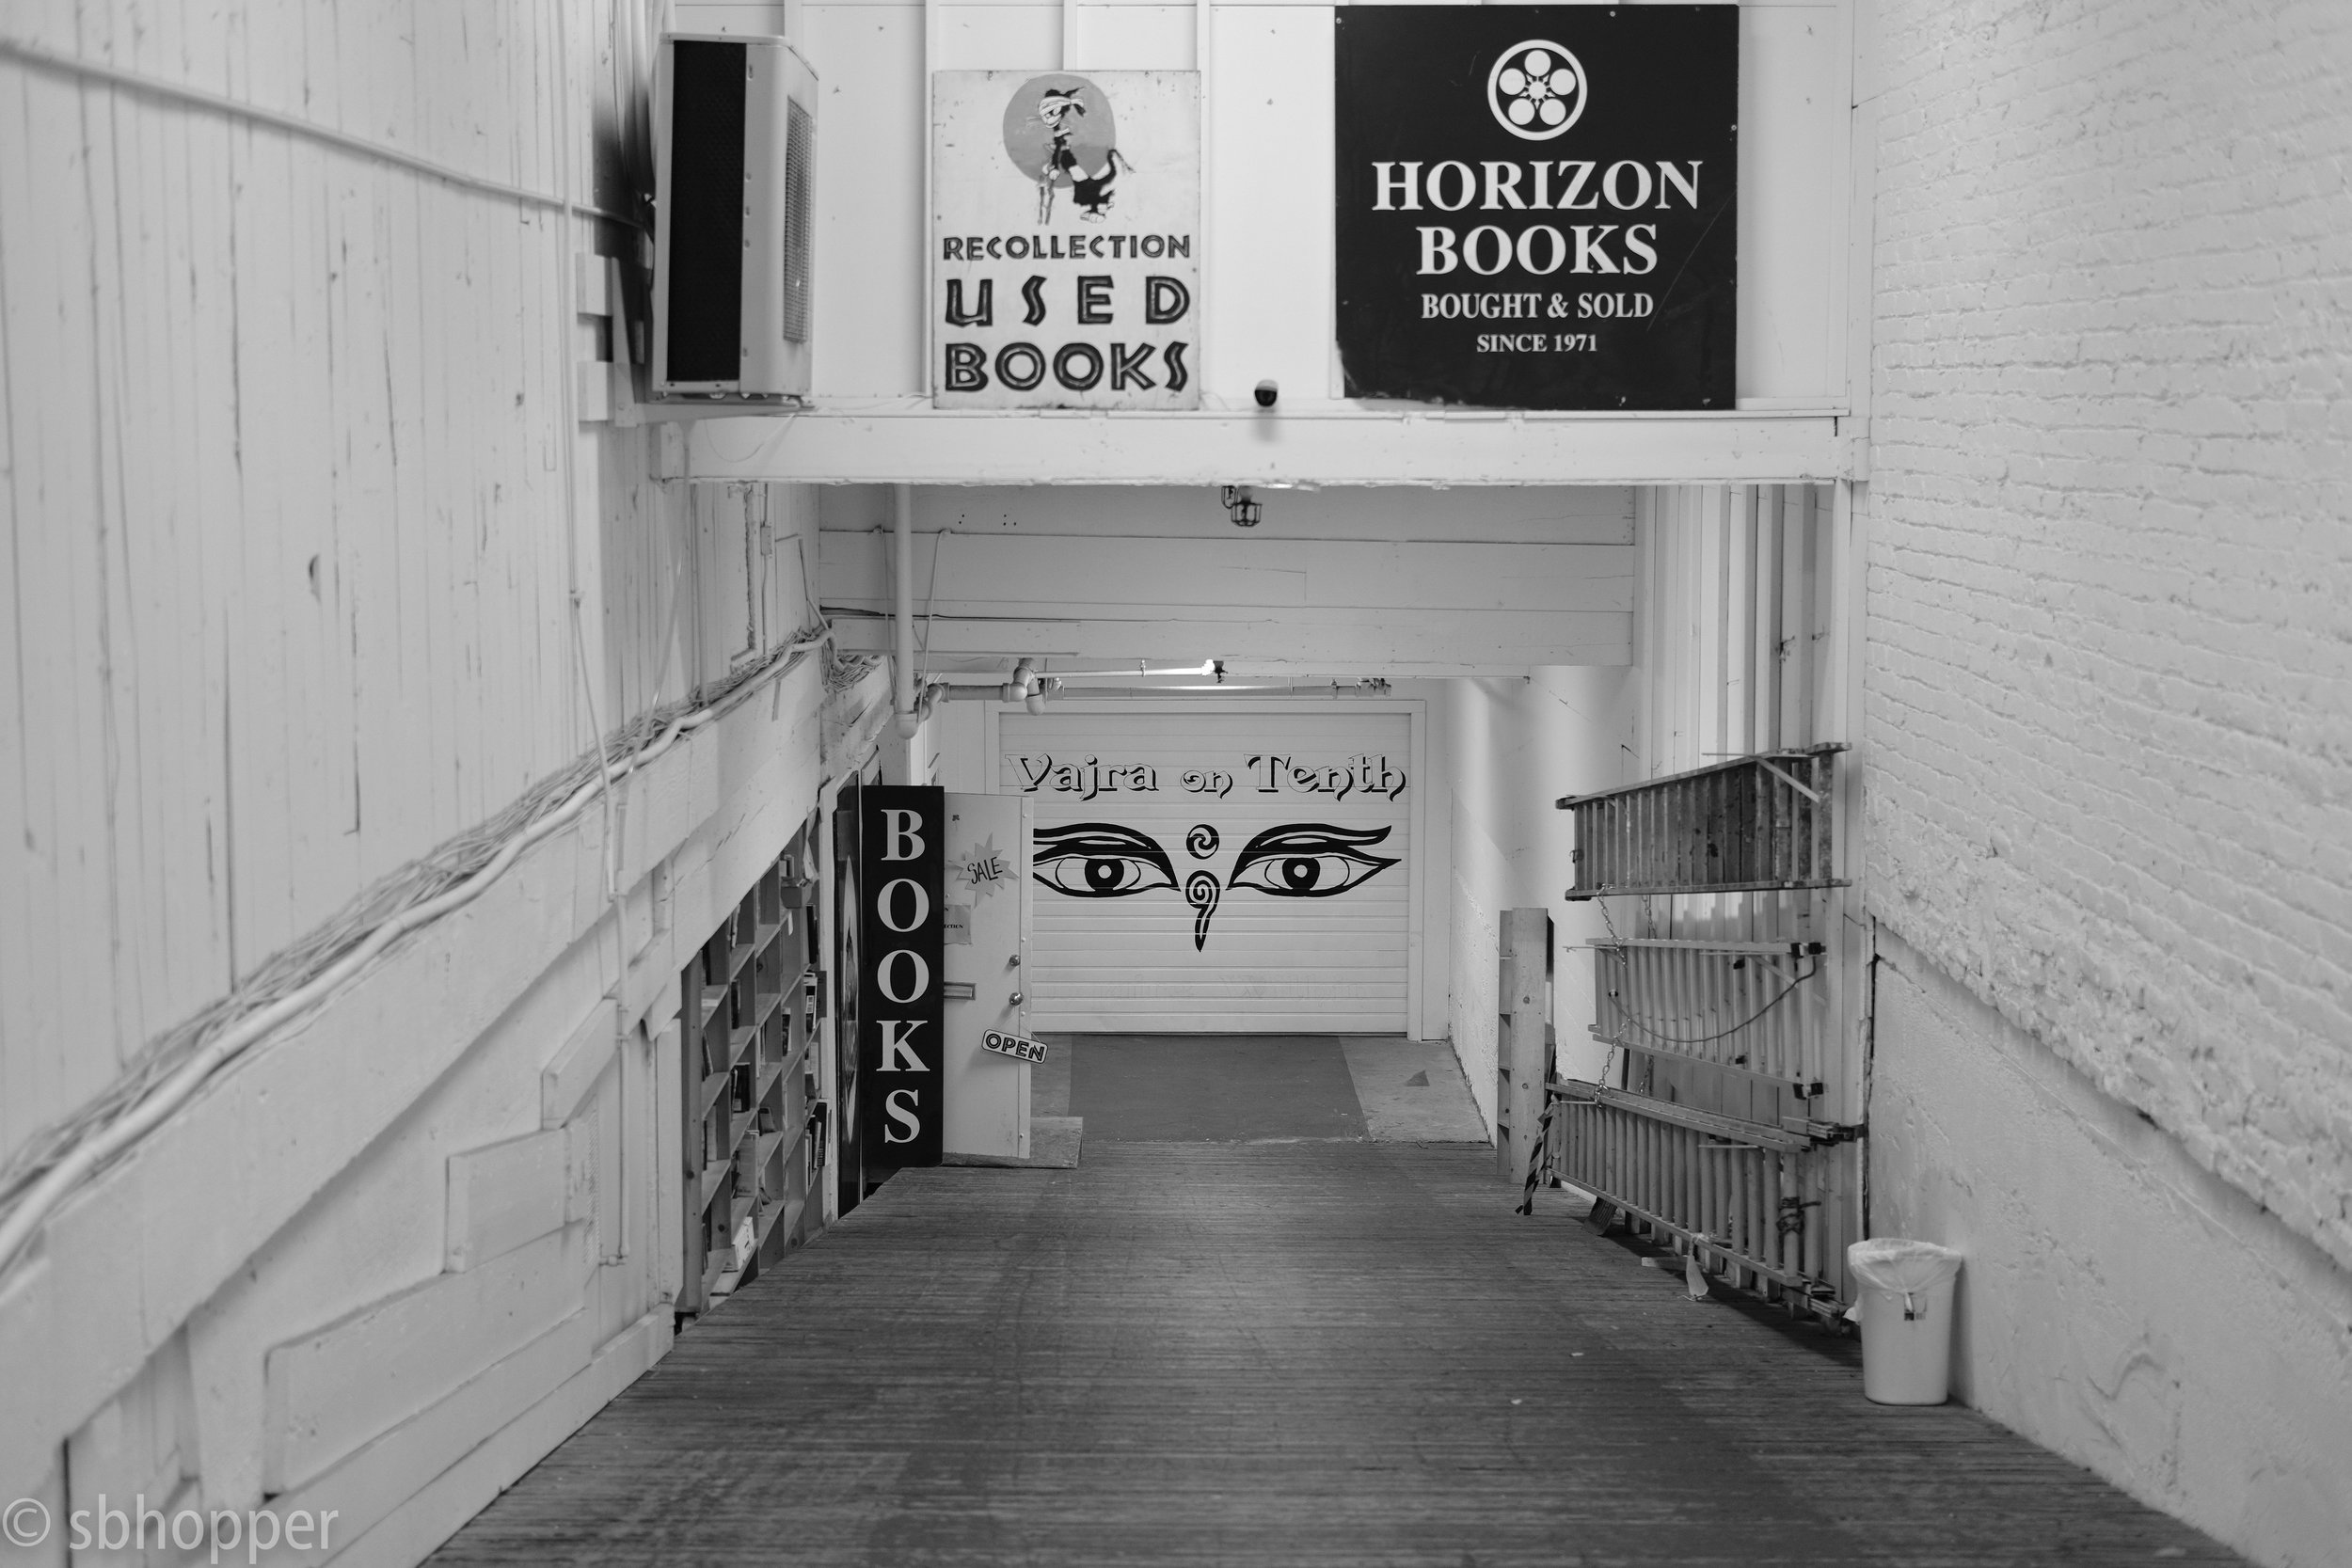 bookstore Seattle Horizon Books Capitol Hill Used Books